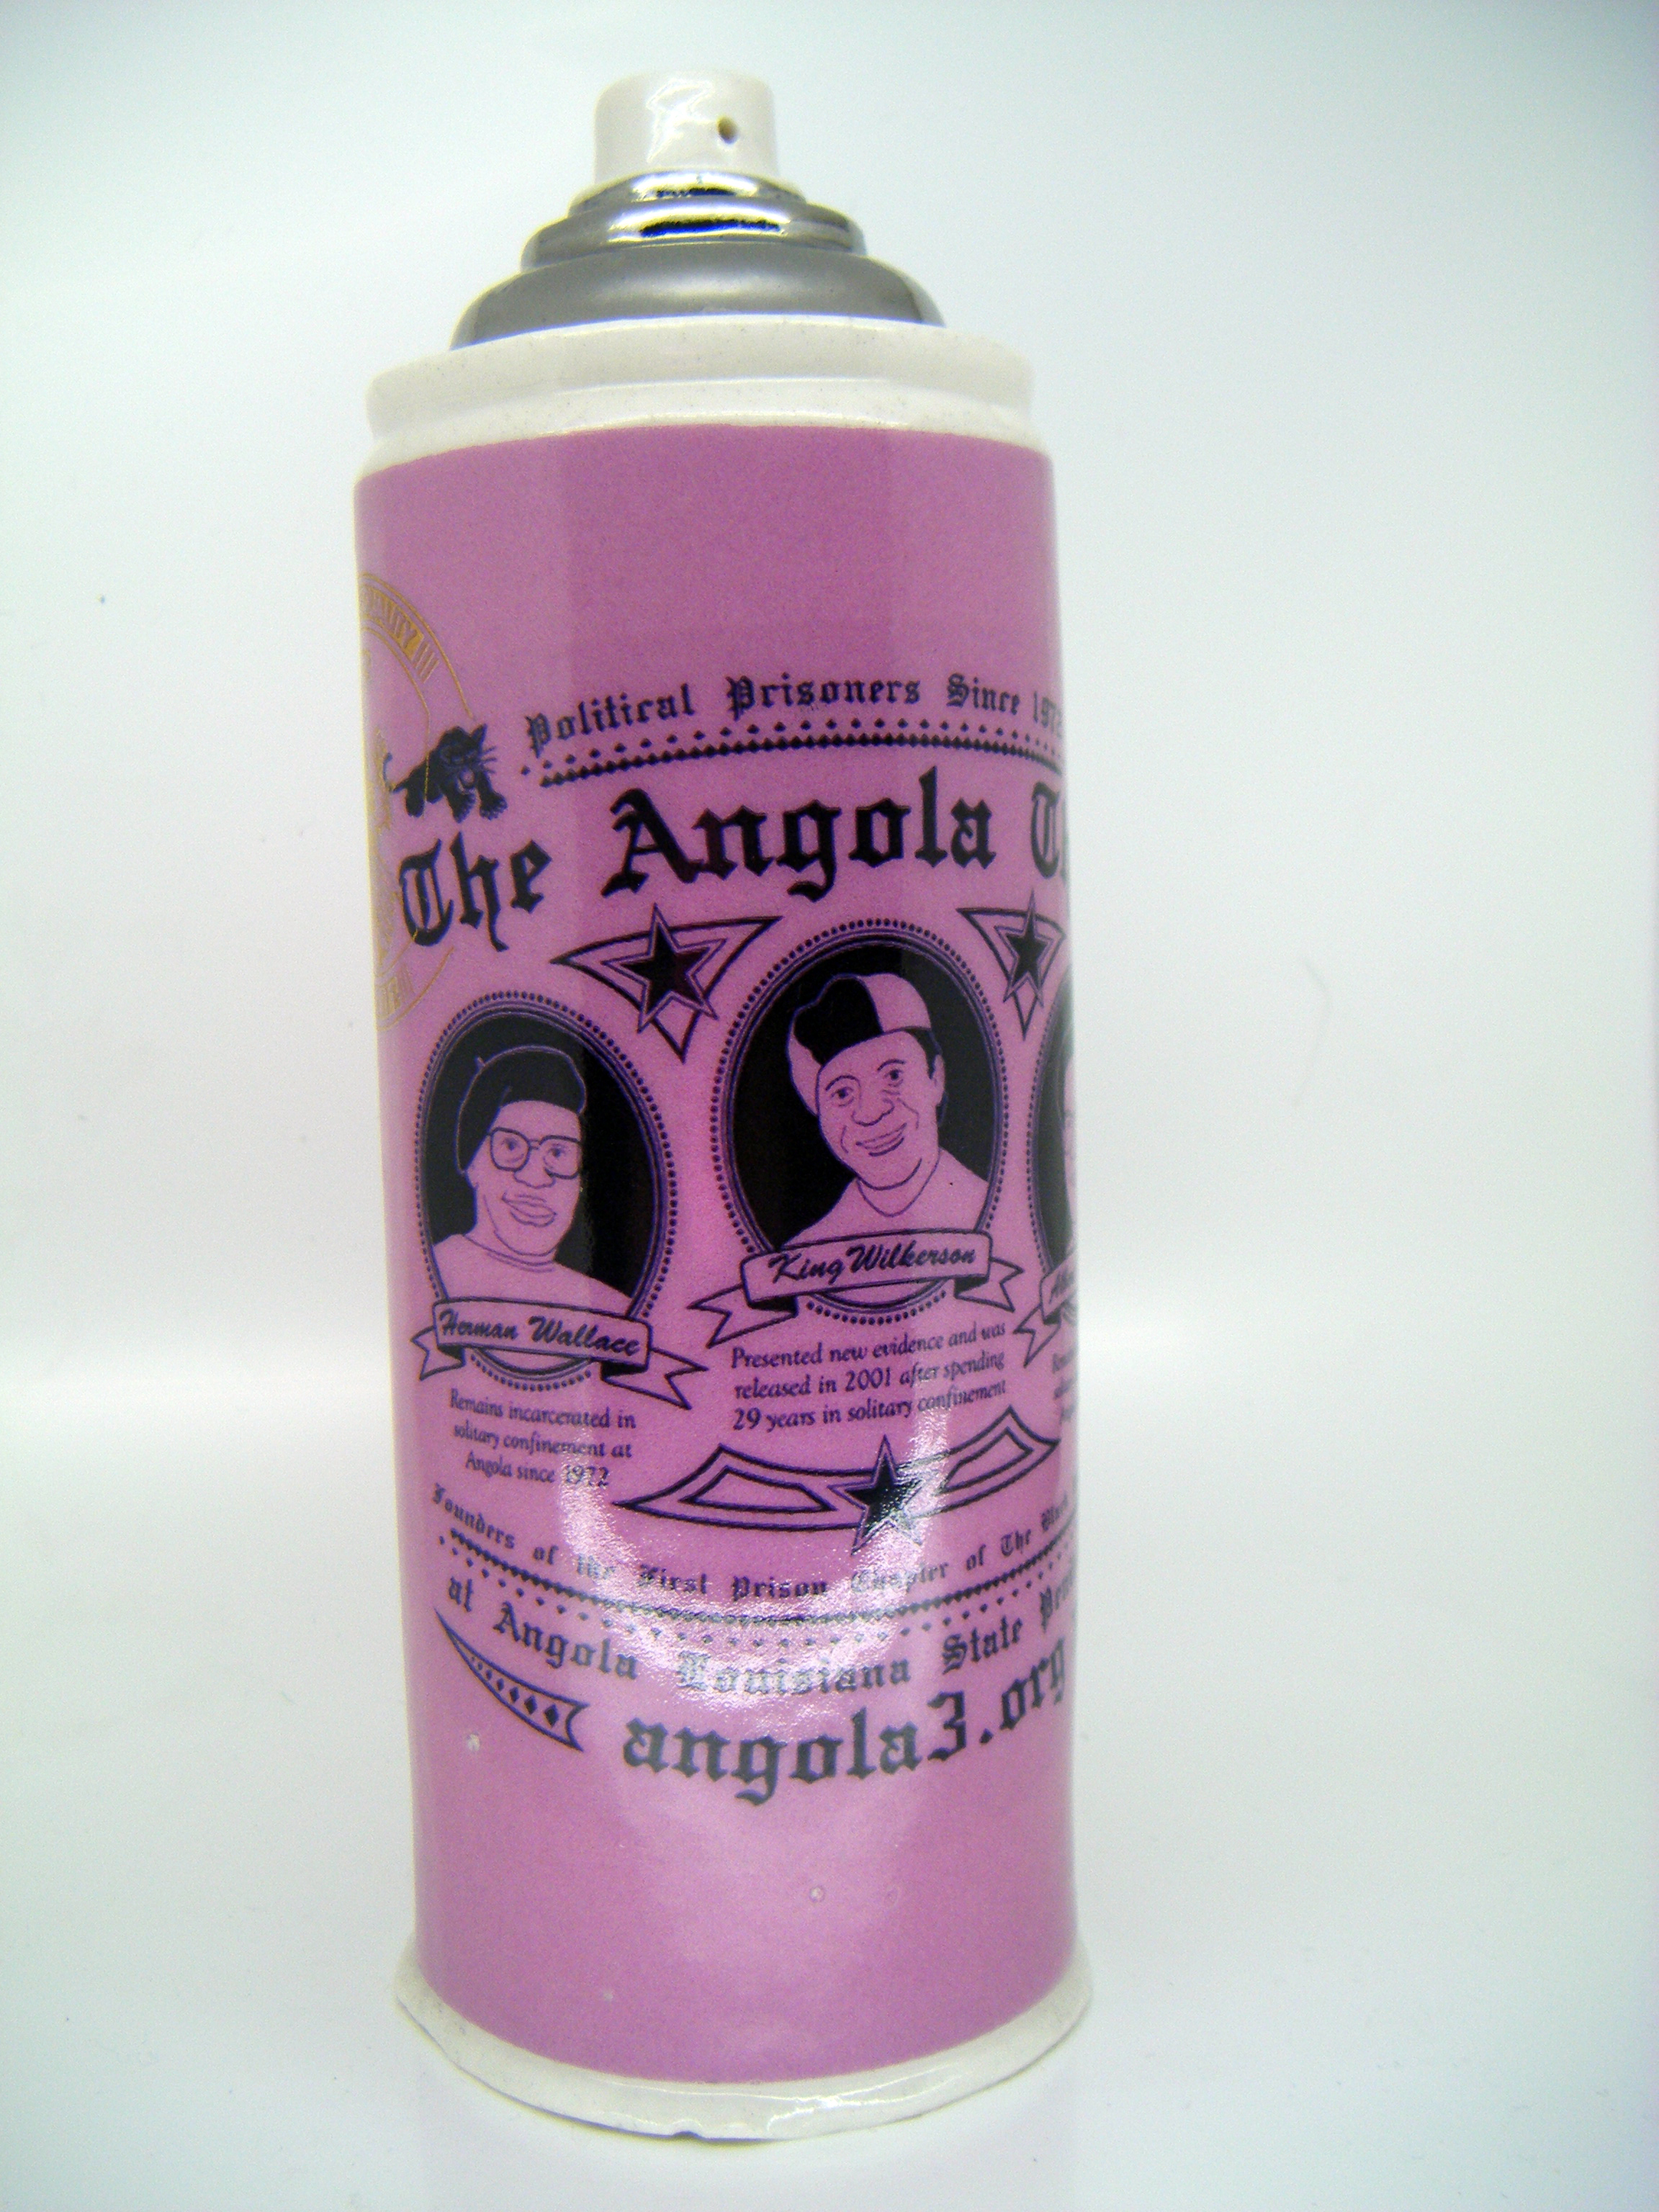 To illustrate the Angola 3